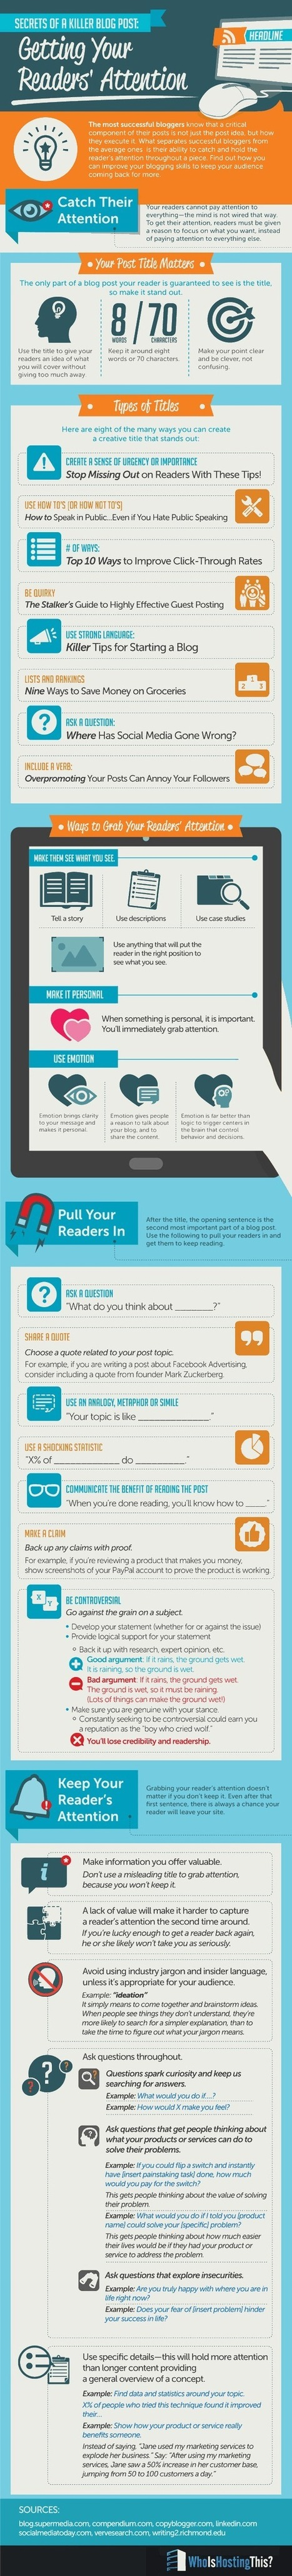 The Secrets to Writing an Attention-Grabbing Blog Post [Infographic] | digital marketing strategy | Scoop.it